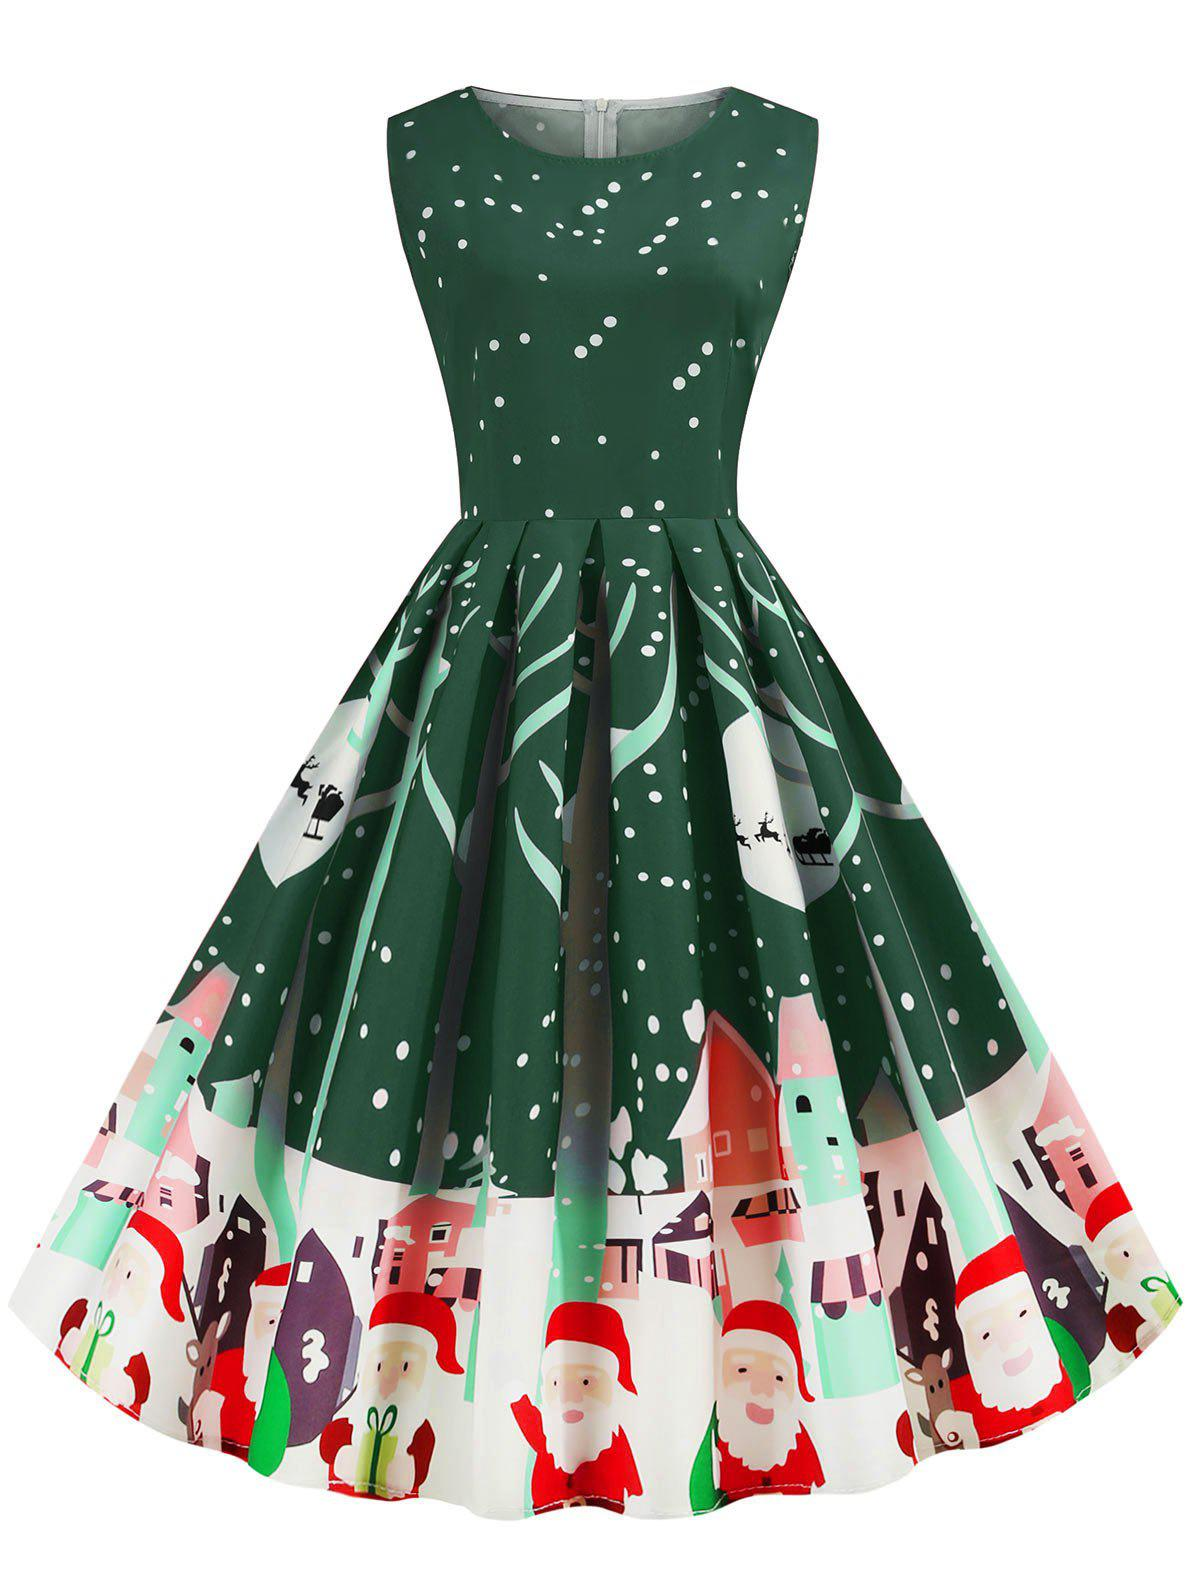 Santa Claus Snowflake Reindeer Sleeveless Christmas Dress - FERN GREEN M